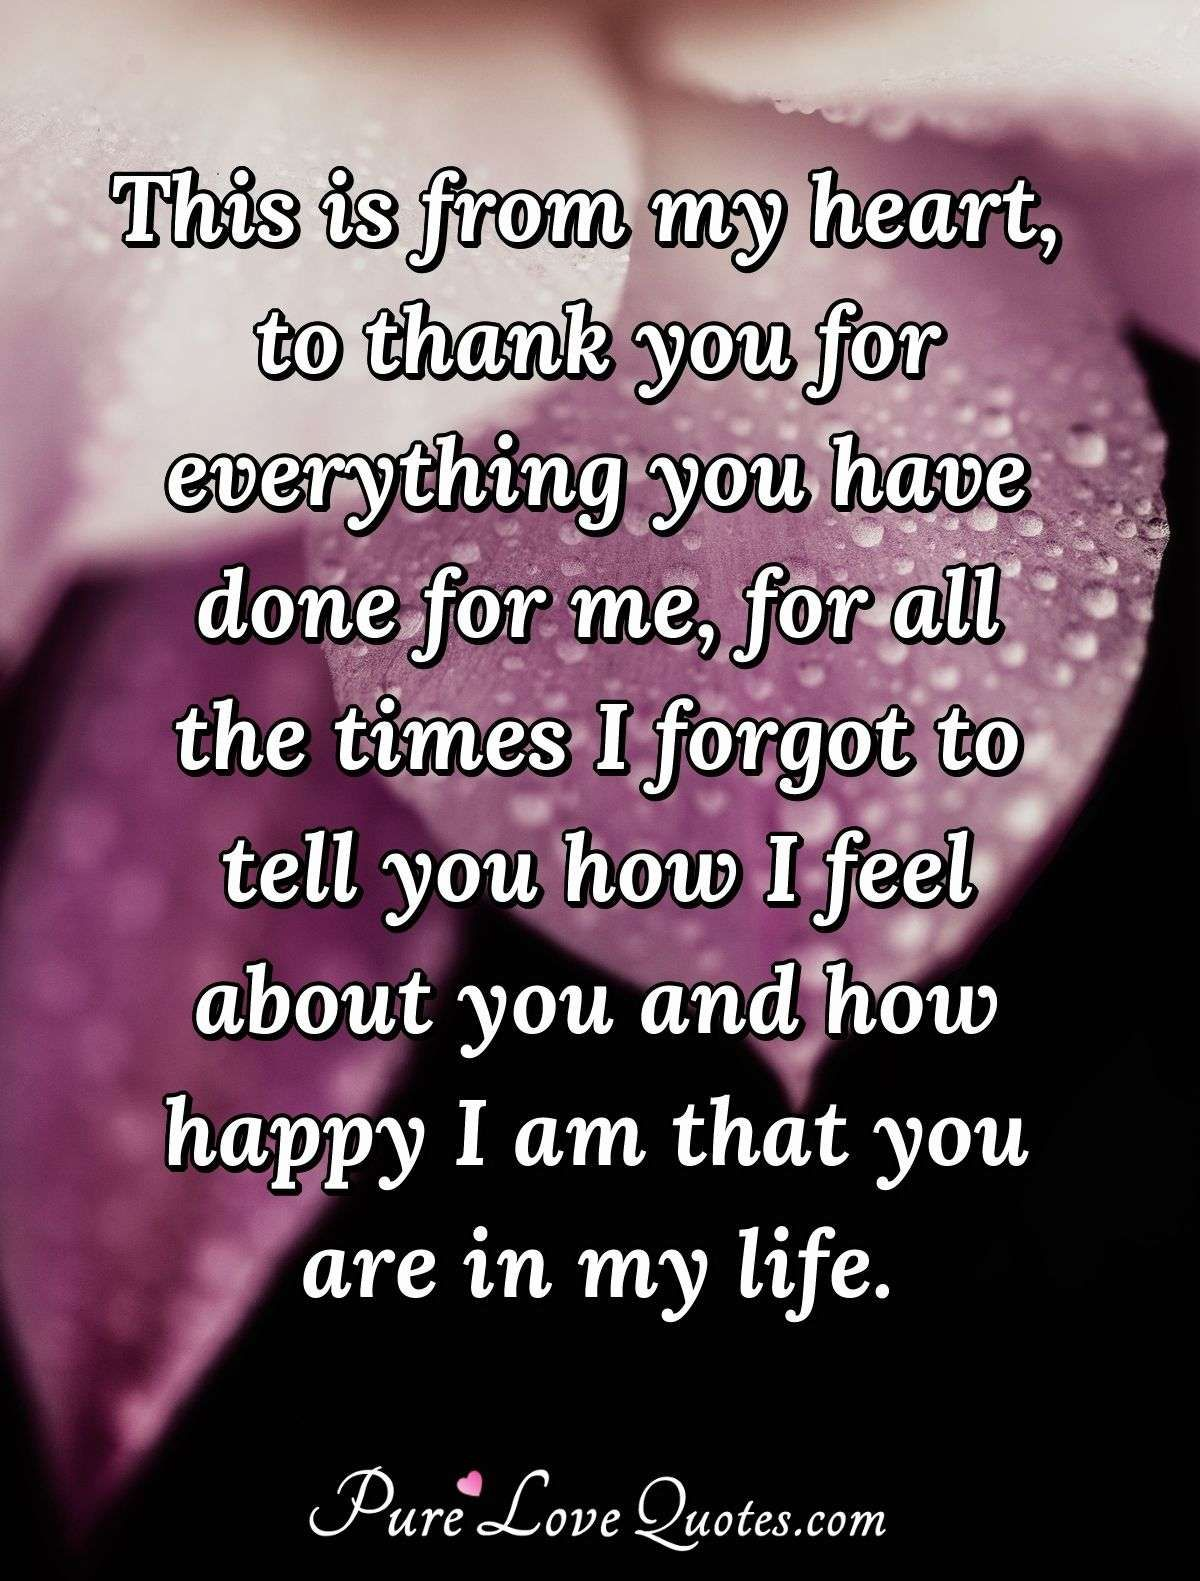 Google Image Result For Https Www Purelovequotes Com Images Quotes 1200 This Is From My Heart To Th In 2020 My Heart Quotes Love Yourself Quotes Love Message For Him